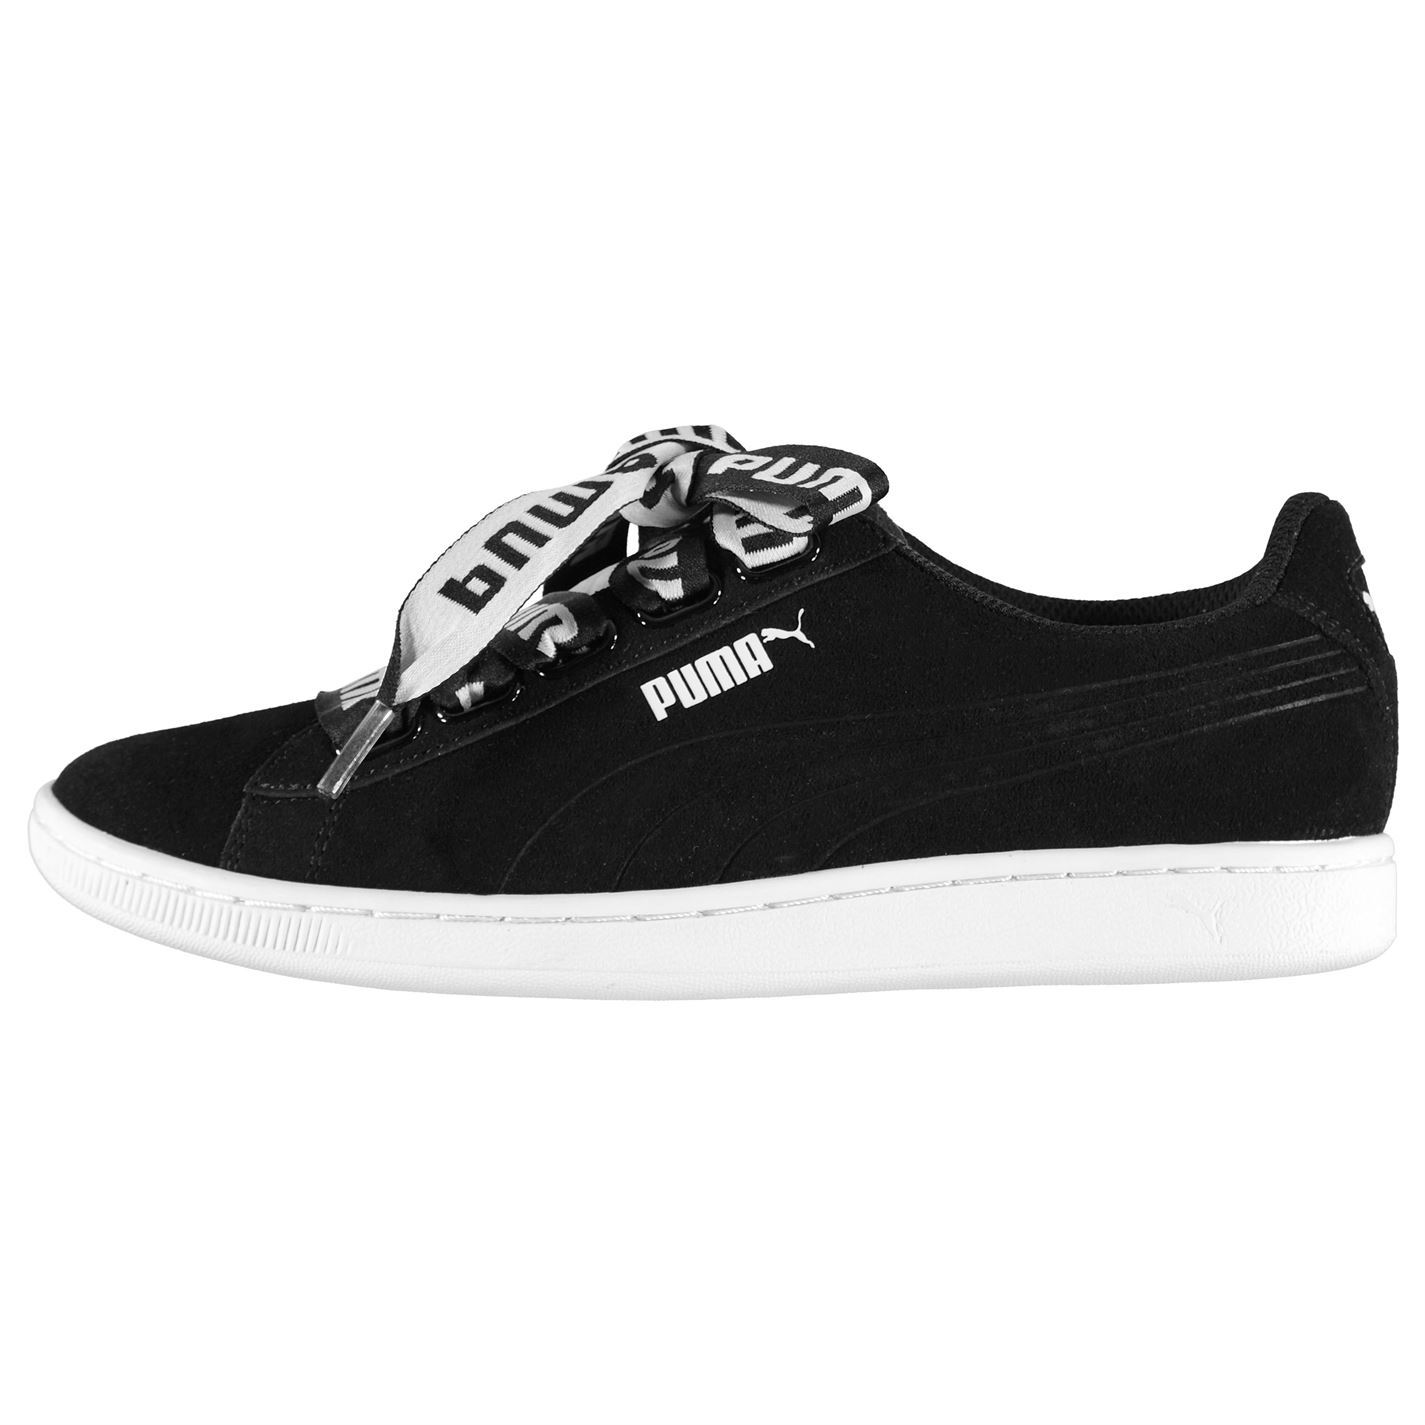 8d87c3abad0 ... Puma Vikky Ribbon Trainers Womens Black Sports Sneakers Trainers ...